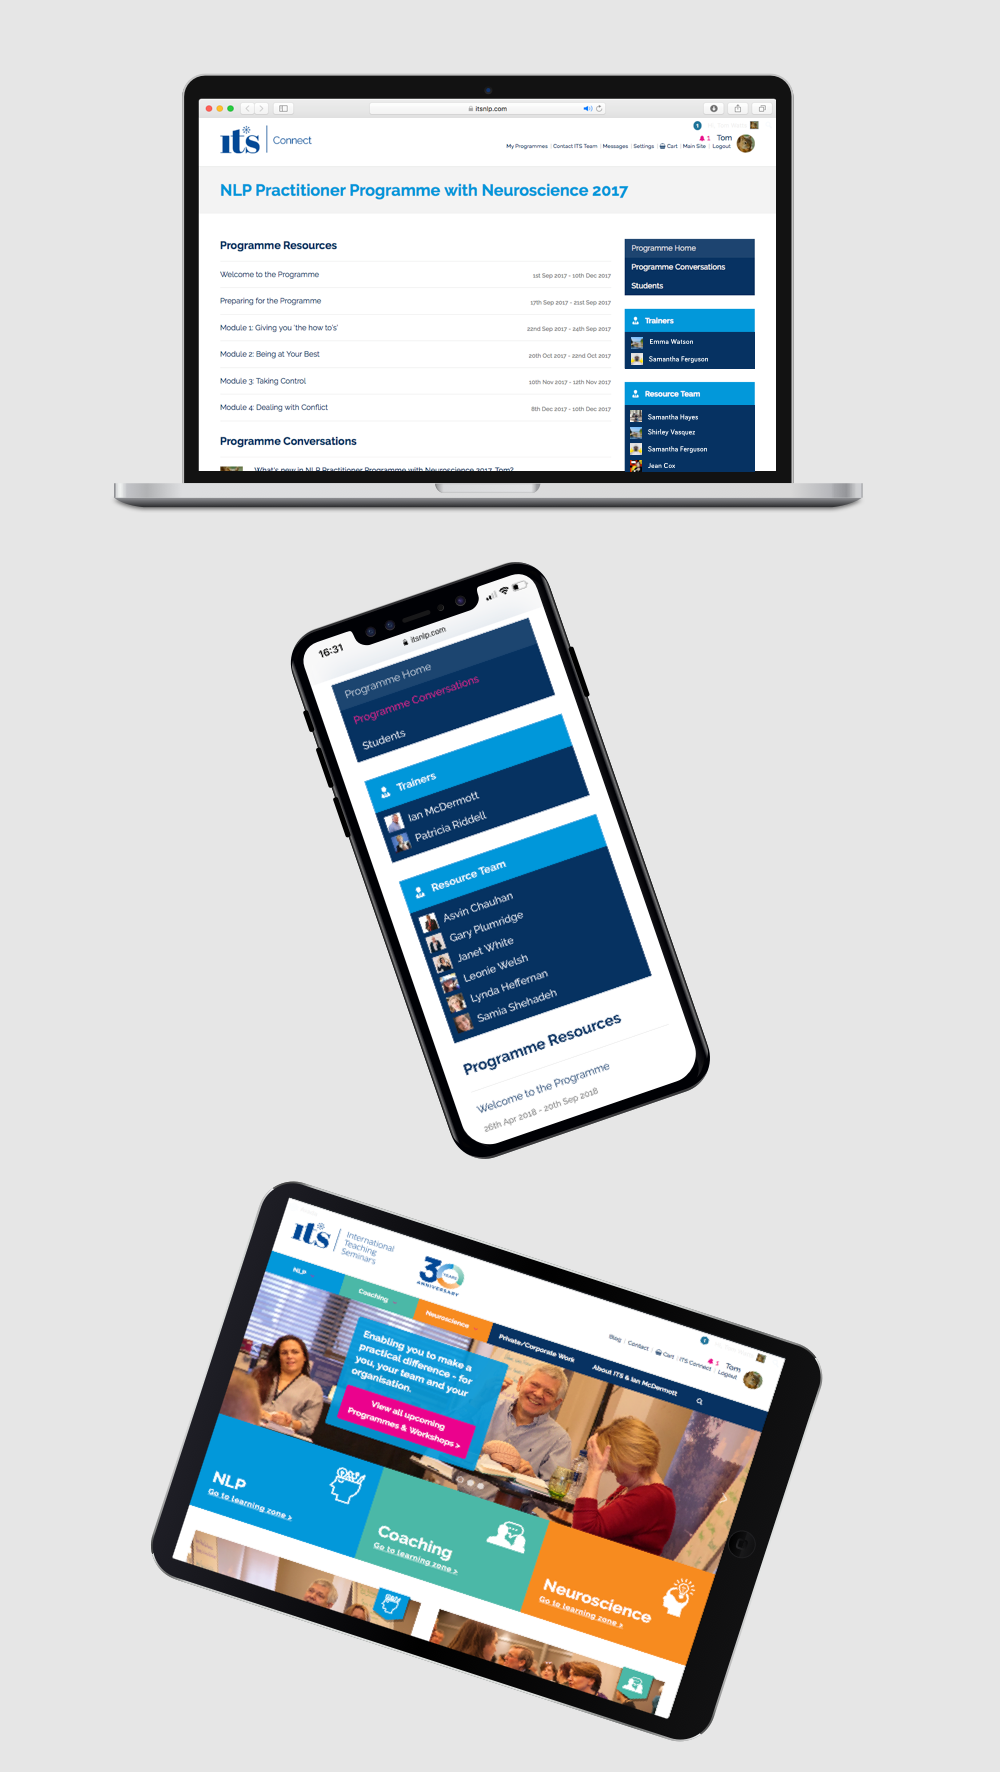 Screen shots of the ITS Connect community, on desktop, tablet and mobile